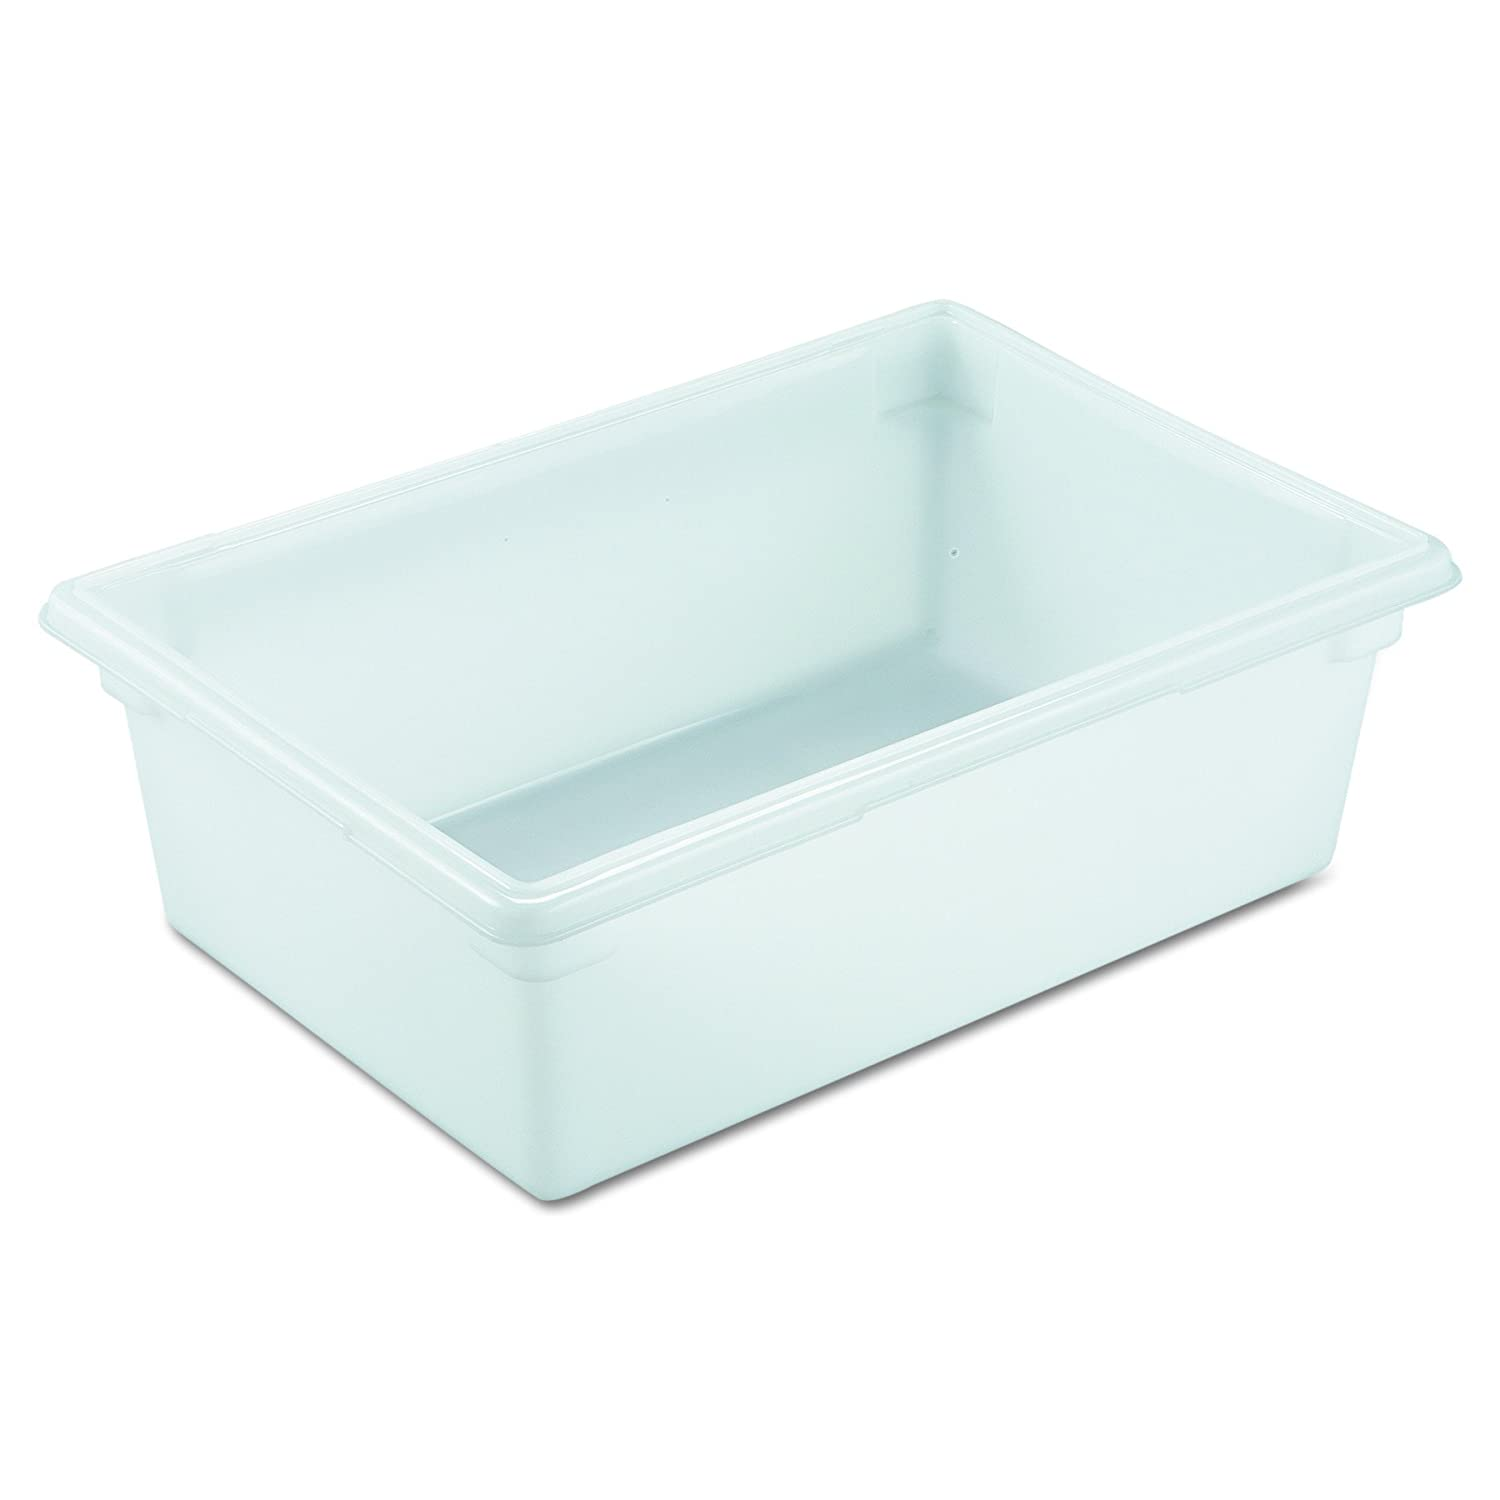 Rubbermaid Commercial Products Food Storage Box/Tote for Restaurant/Kitchen/Cafeteria, 12.5 Gallon, White (FG350000WHT)